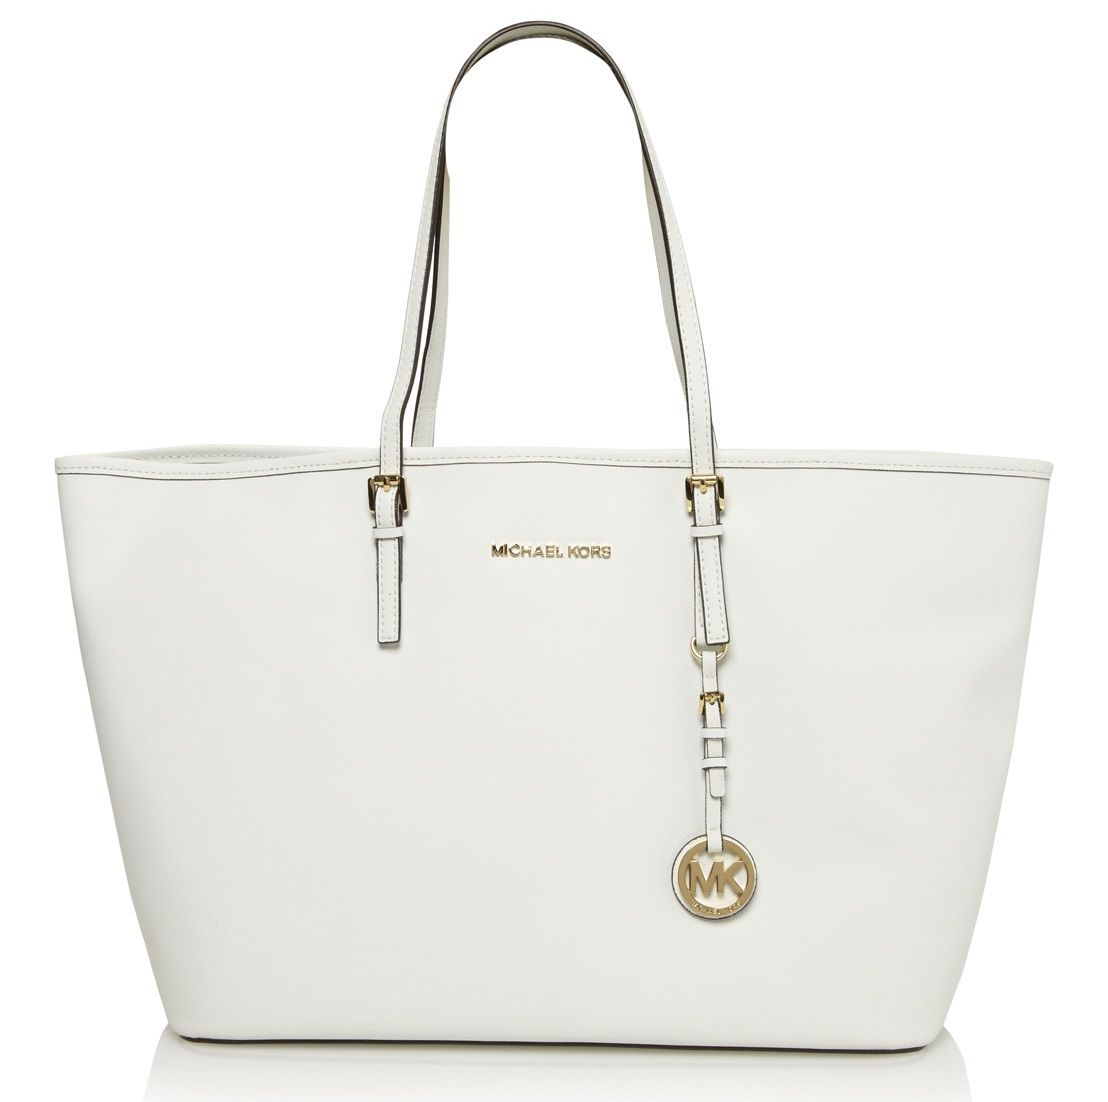 Michael kors outlet � For more handbags and great deals on Amazon ,visit :  www.designer-style